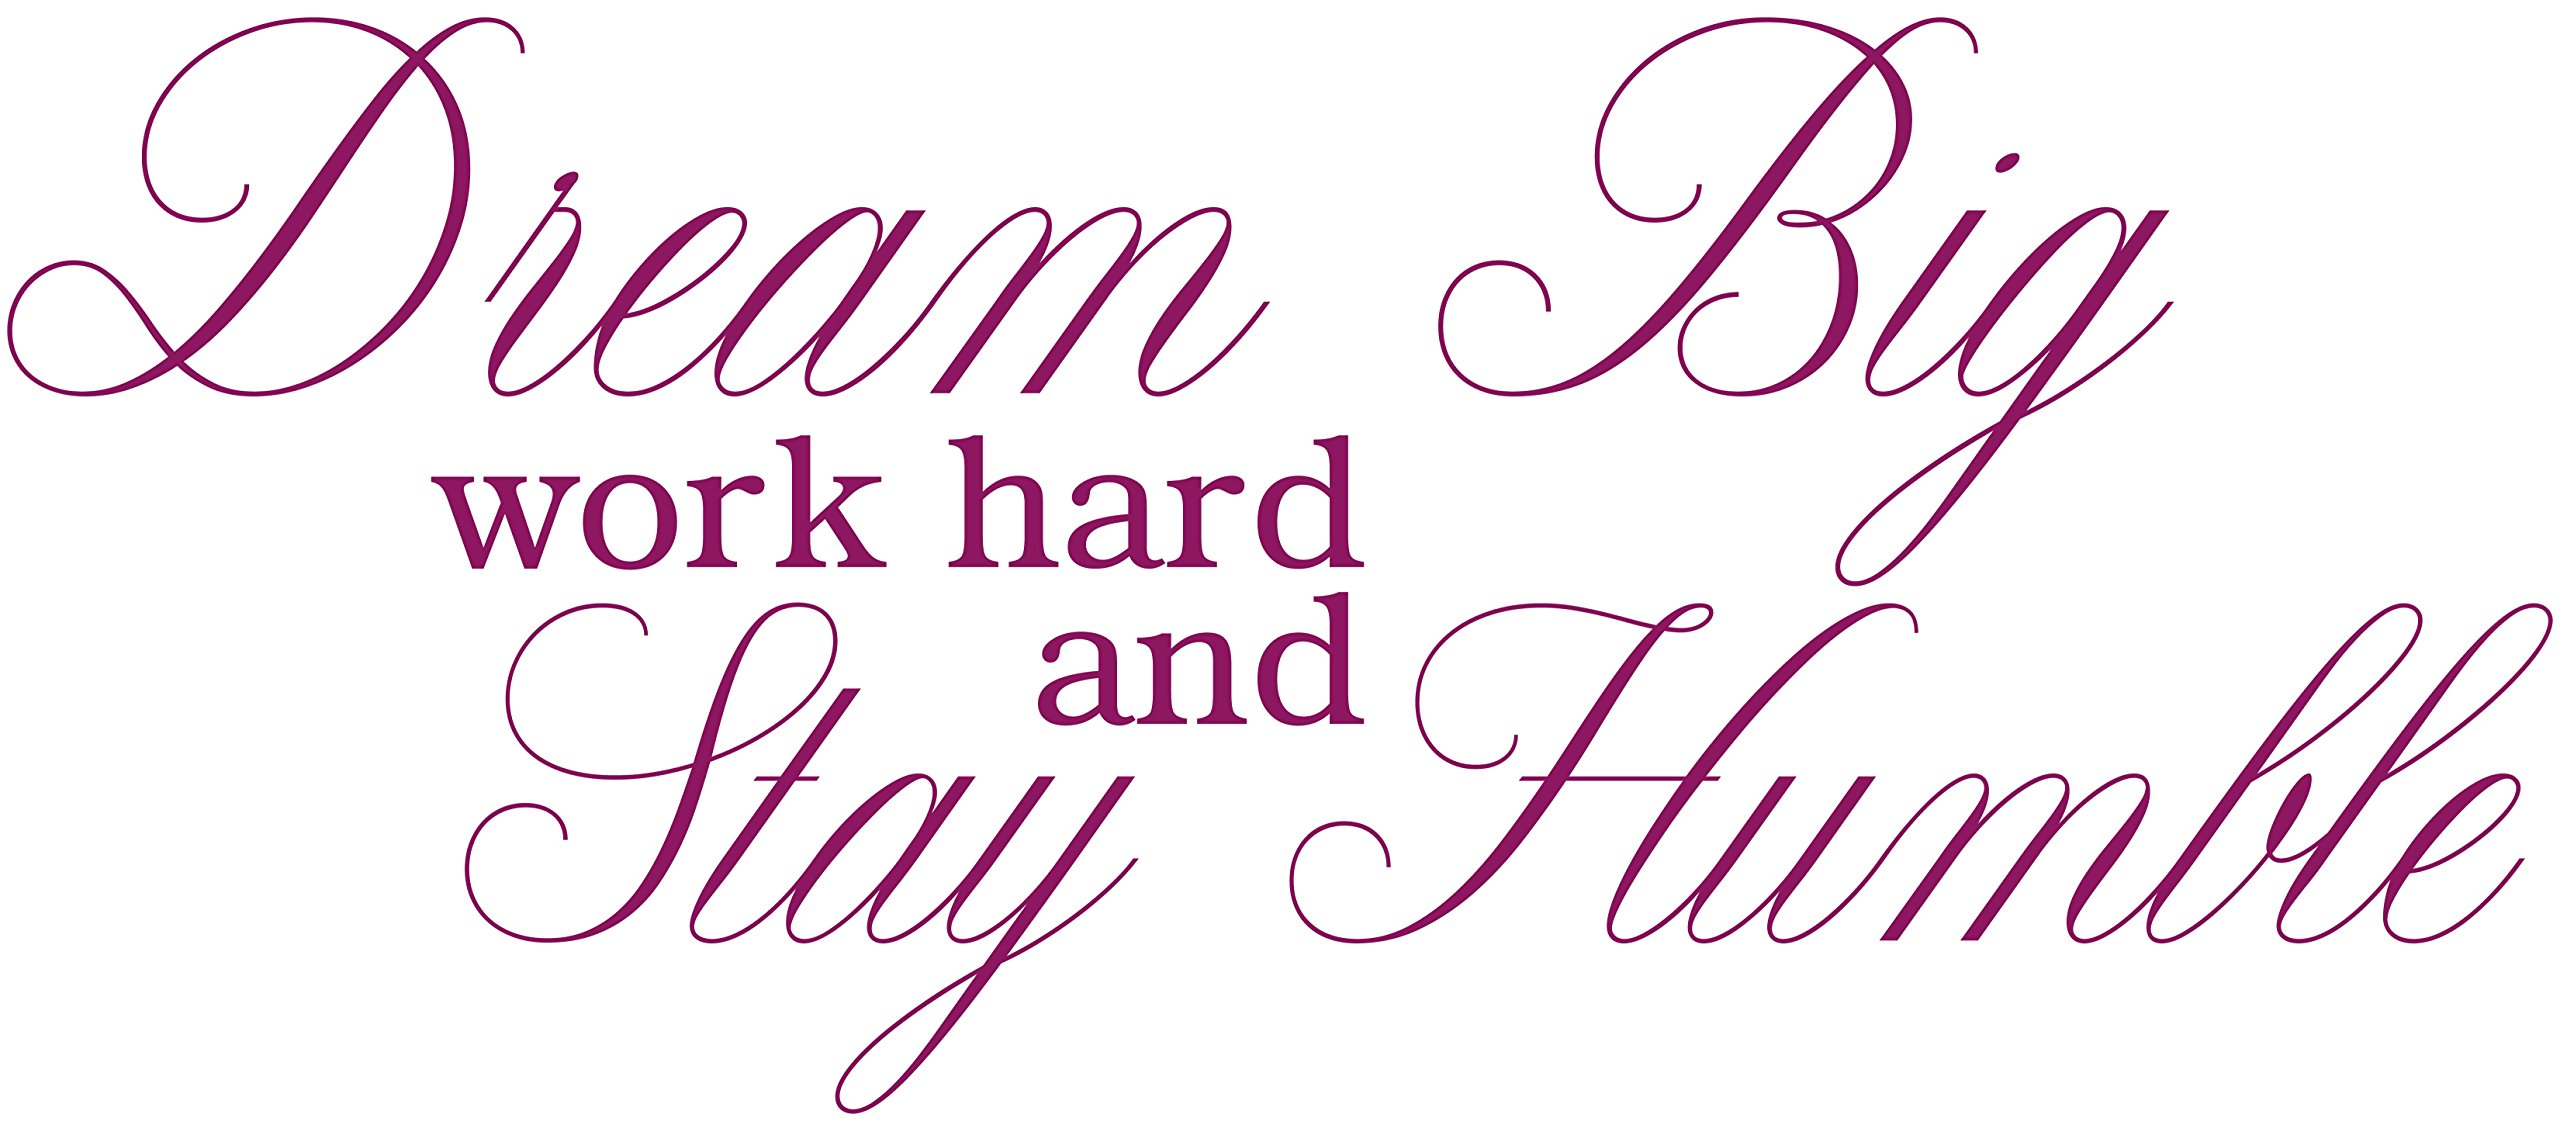 Omega Dream Big work hard and Stay Humble Vinyl Decal Wall Sticker Quote - Medium - Purple by Omega (Image #1)